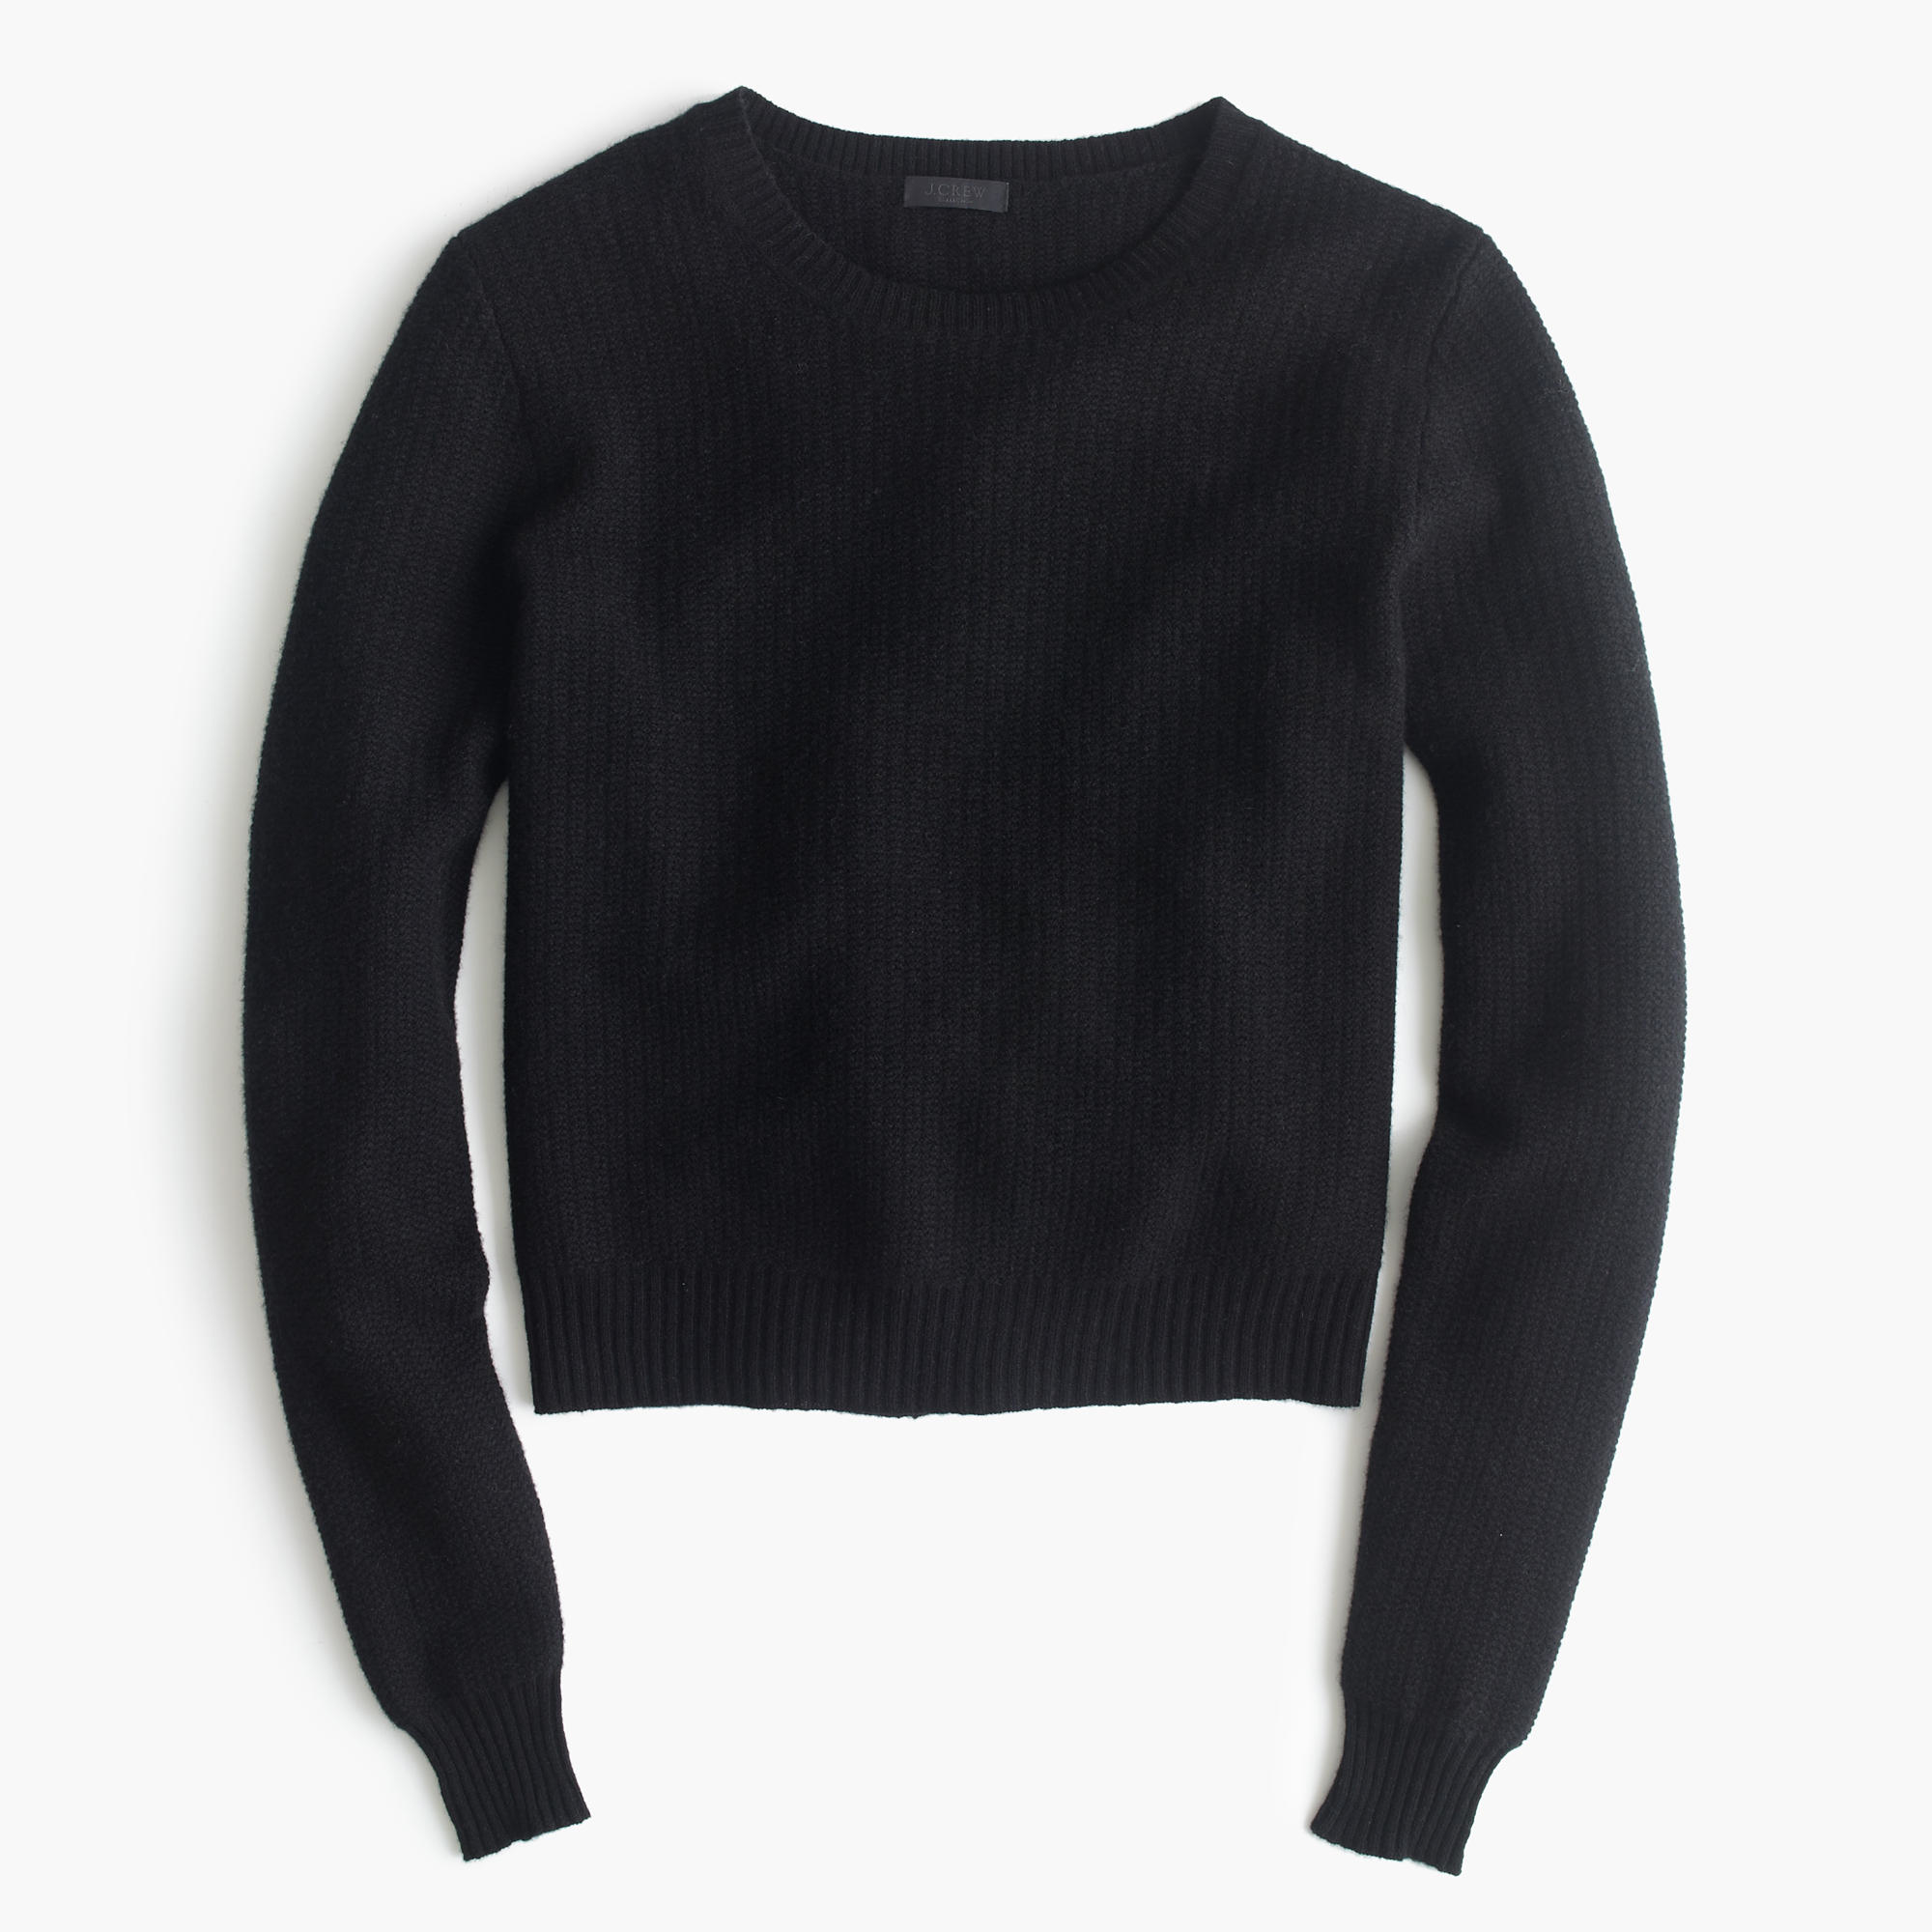 J.crew Cropped Cashmere Pullover Sweater in Black | Lyst